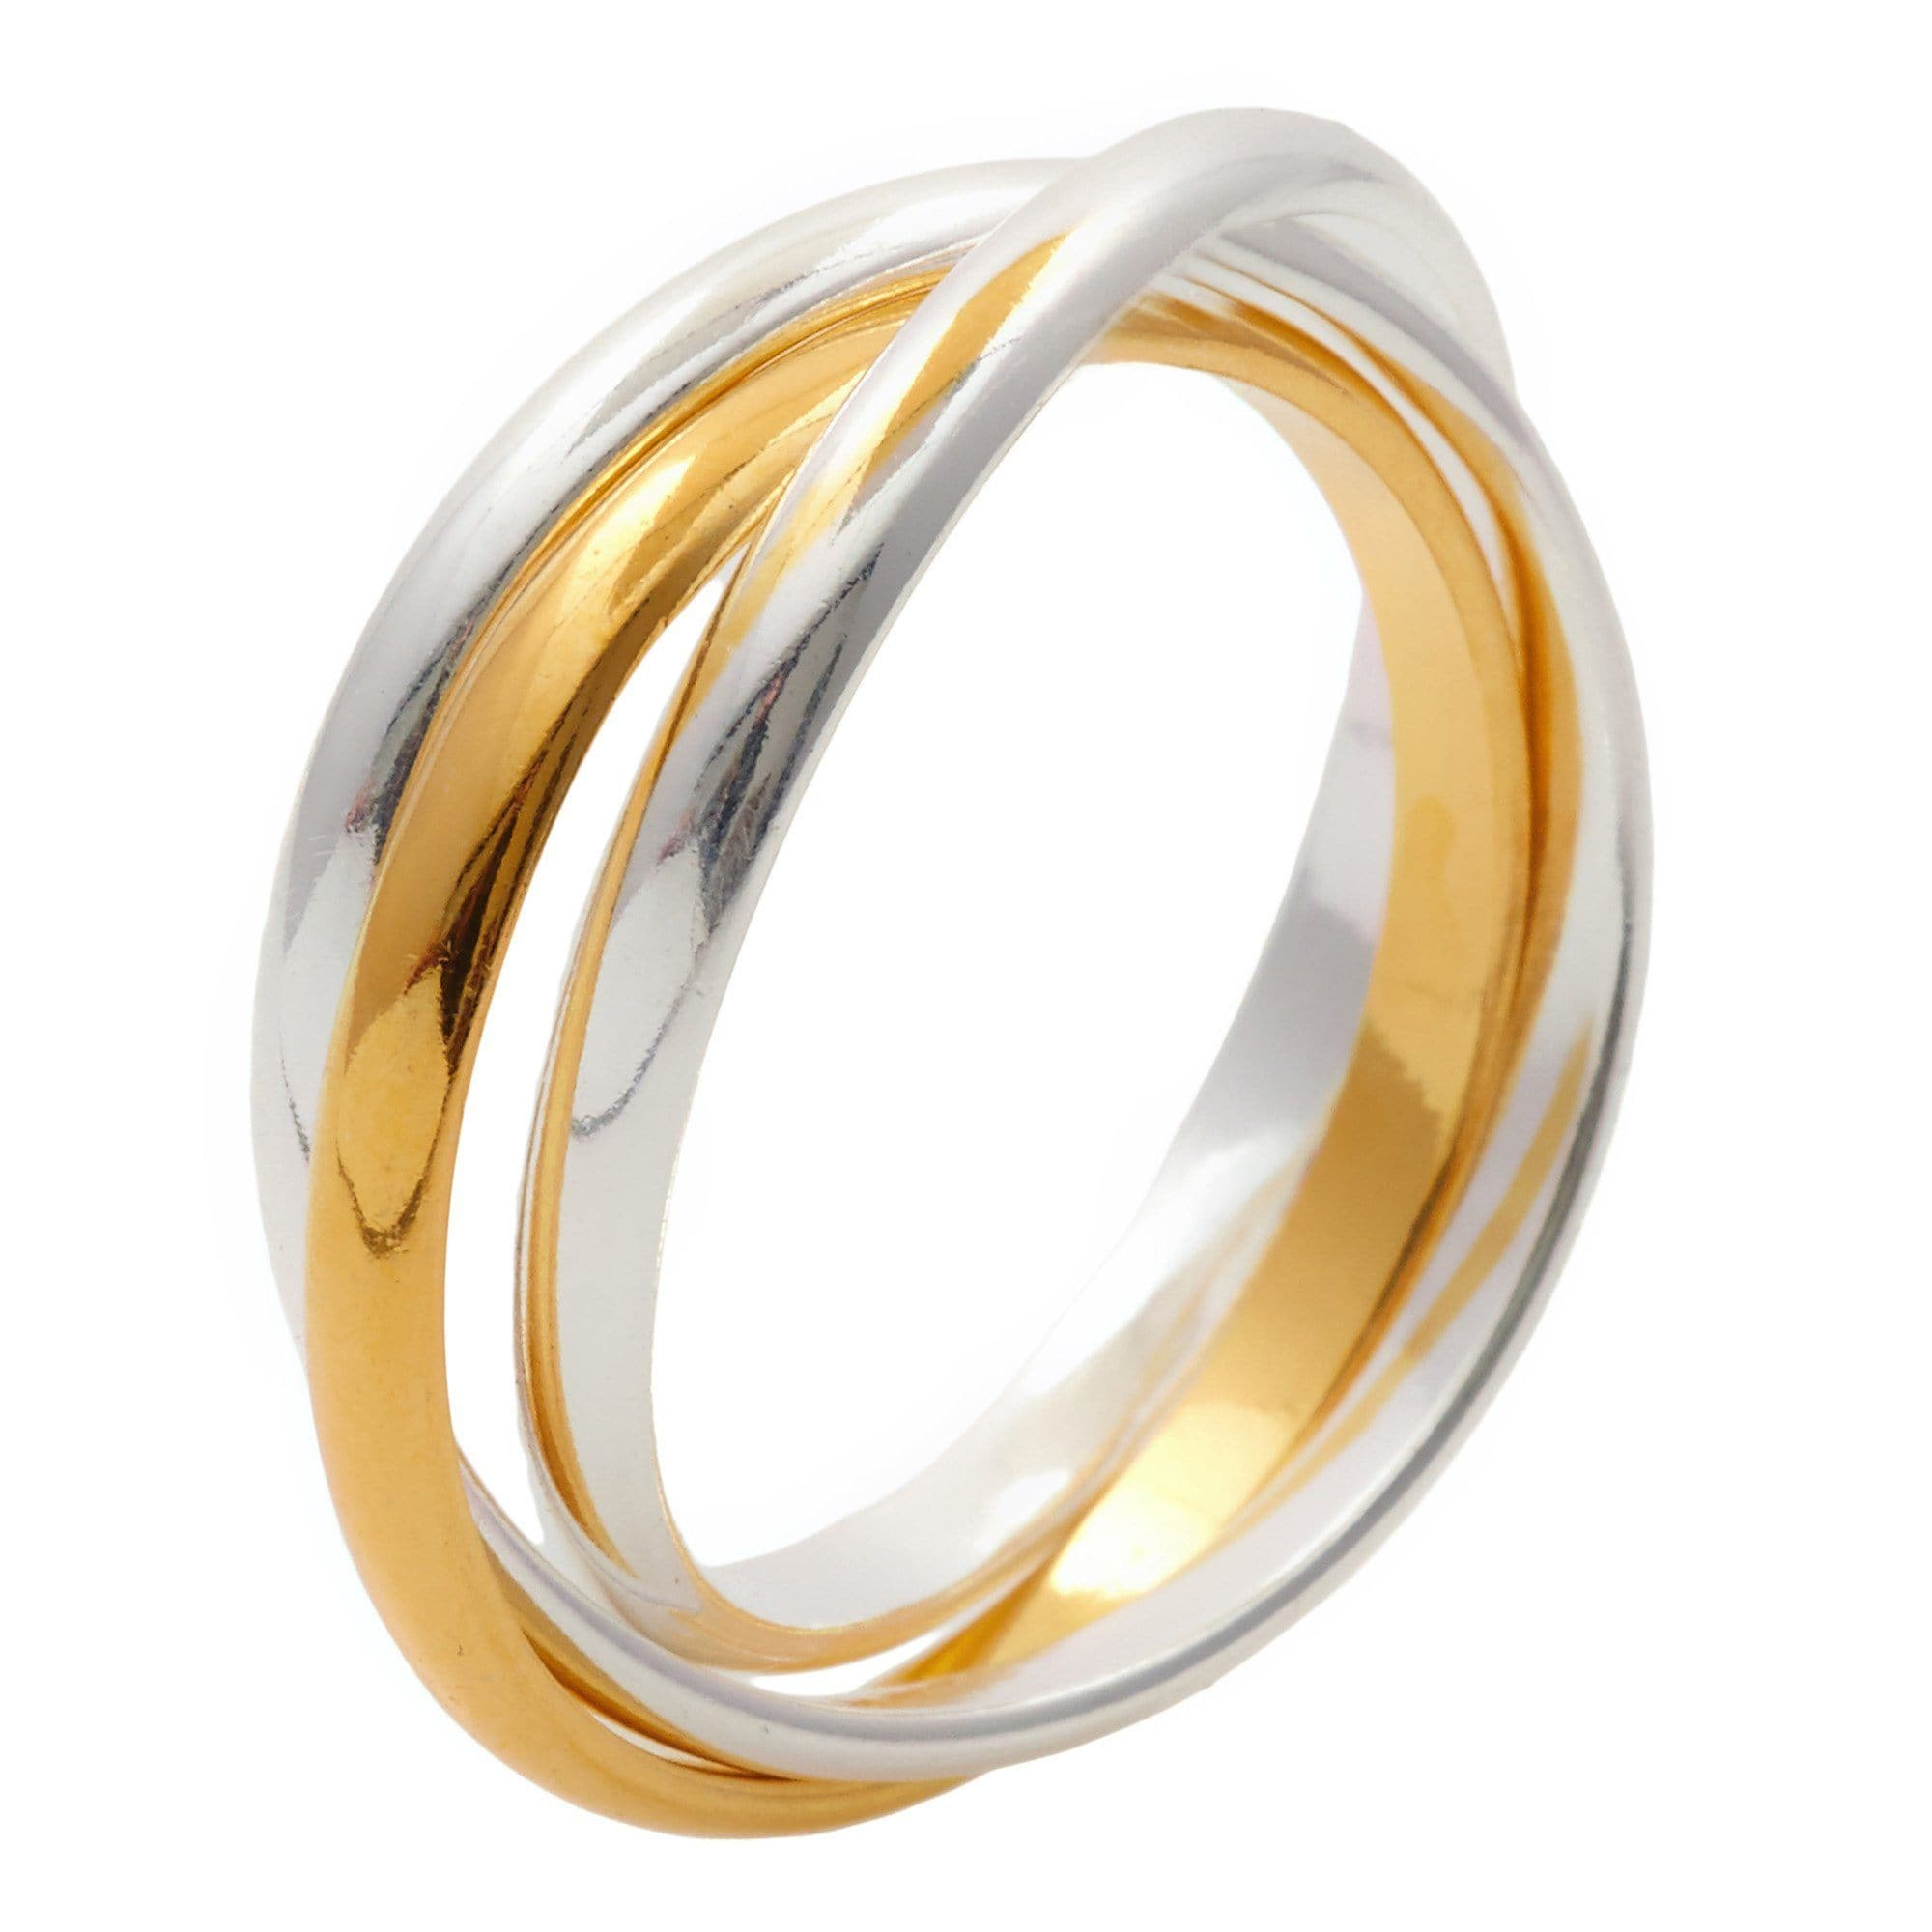 48be3759f 3 Interlocking Rings Silver and Yellow Gold Russian Style - Silverly